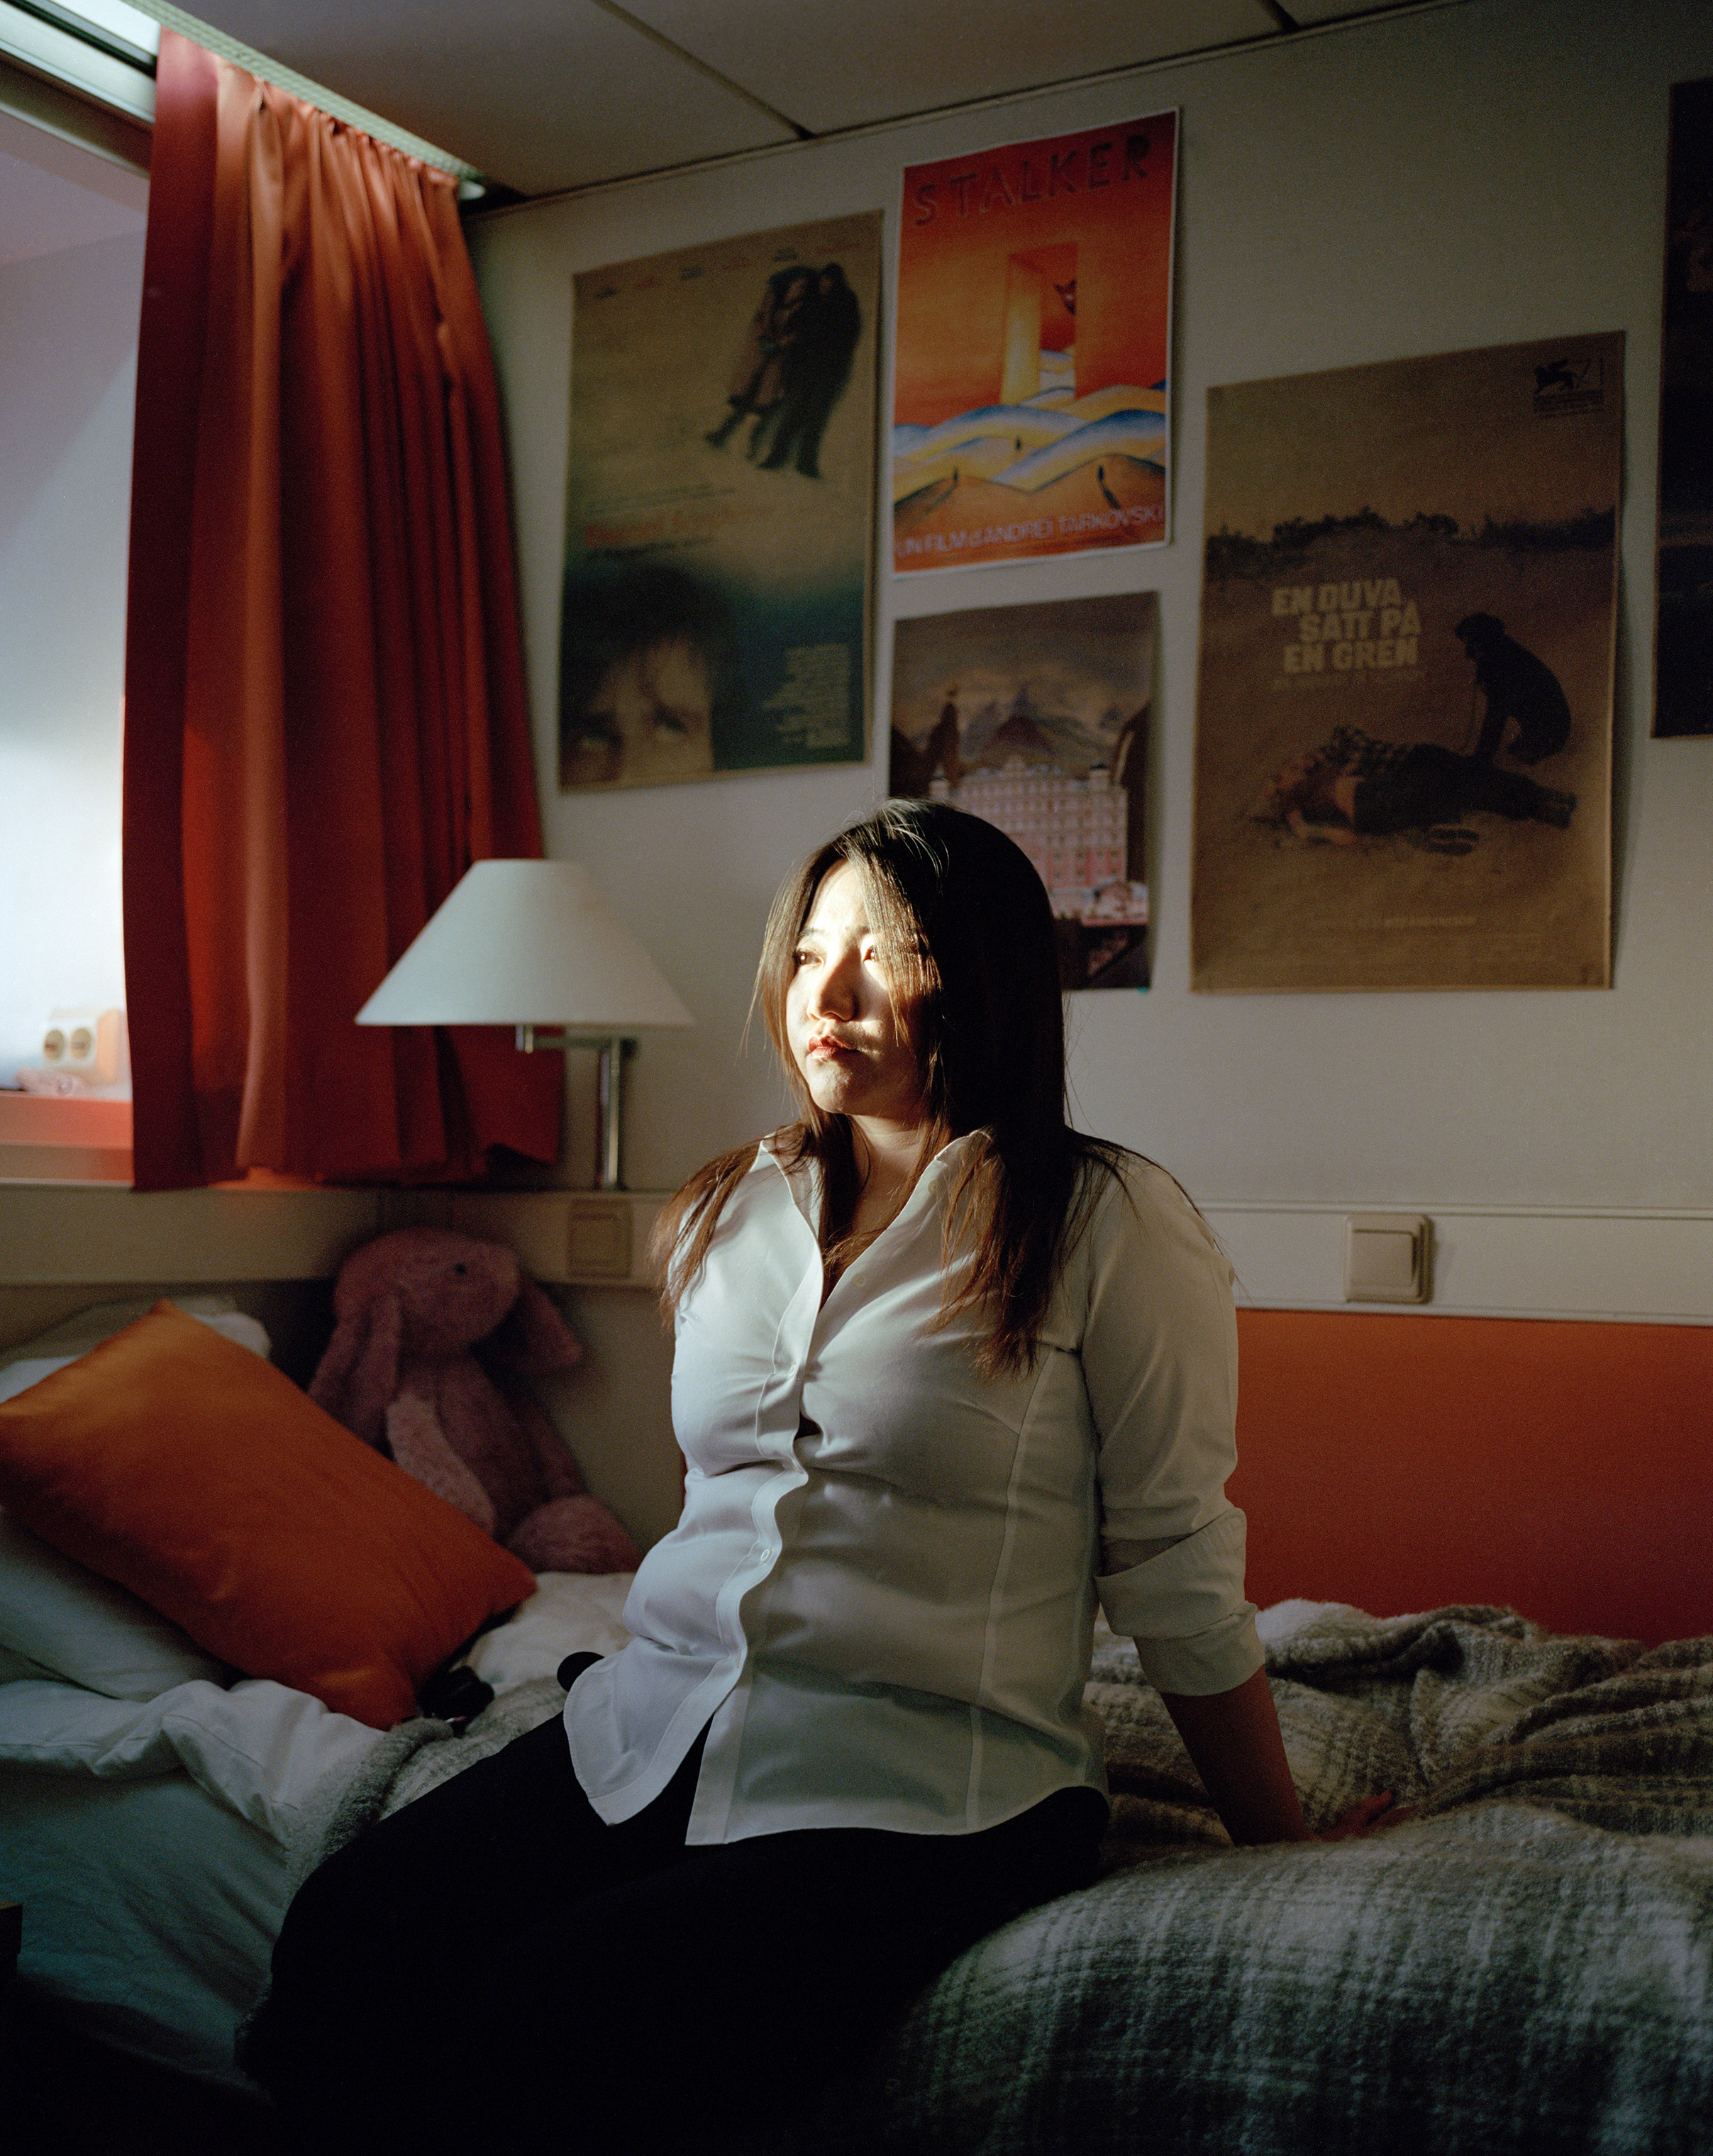 Jill  Lei Yin, an expedition guide and Mandarin translator from Beijing dreamed about coming to Antarctica since childhood. She would love to overwinter at a research base, but in China, these positions do not accept women.